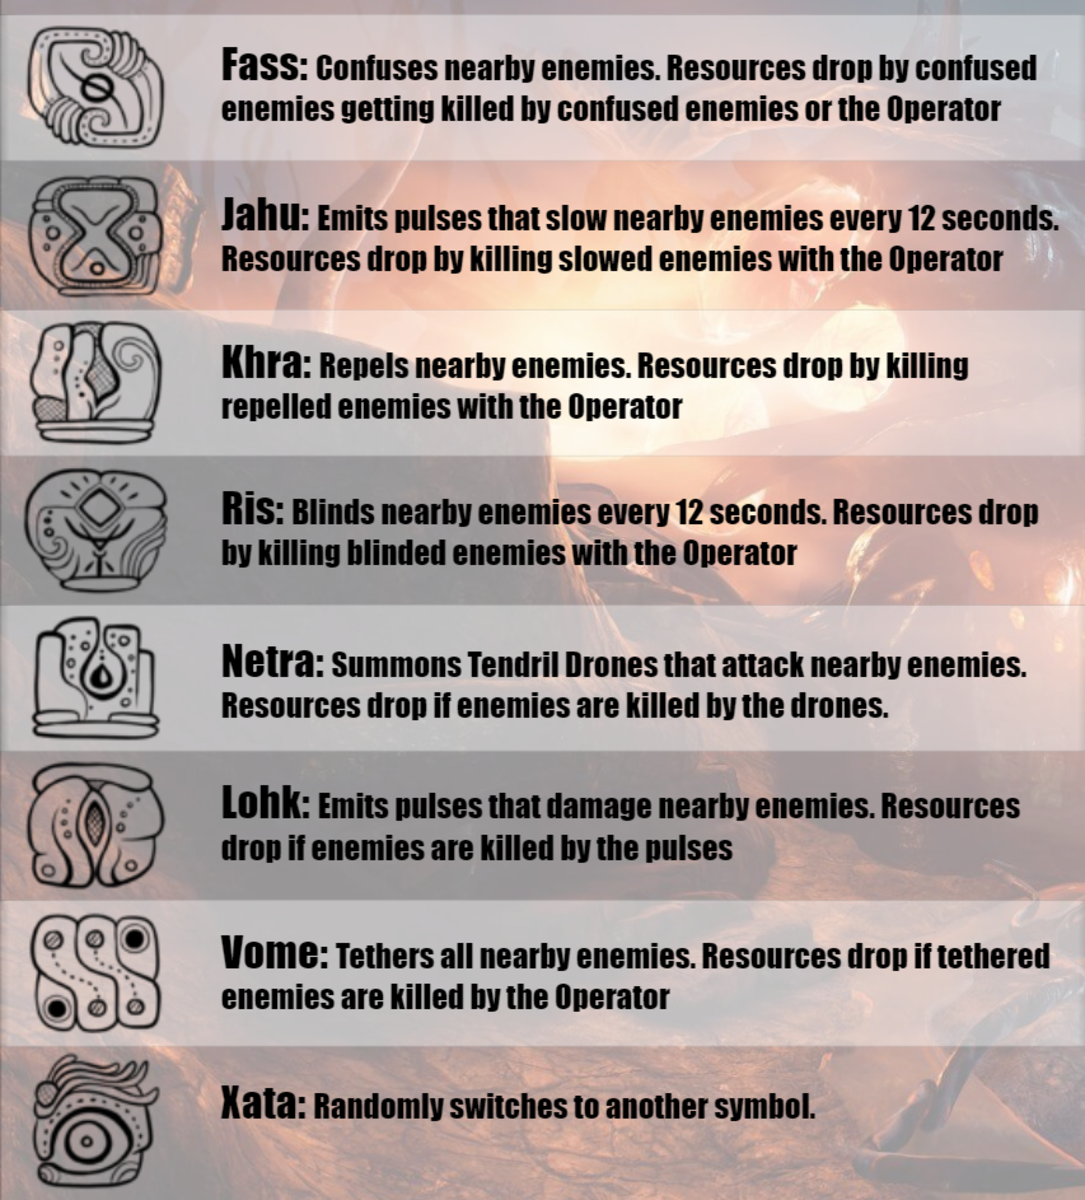 Each Requiem Symbol has a different effect and has their own requirements to generate resources from the obelisk.